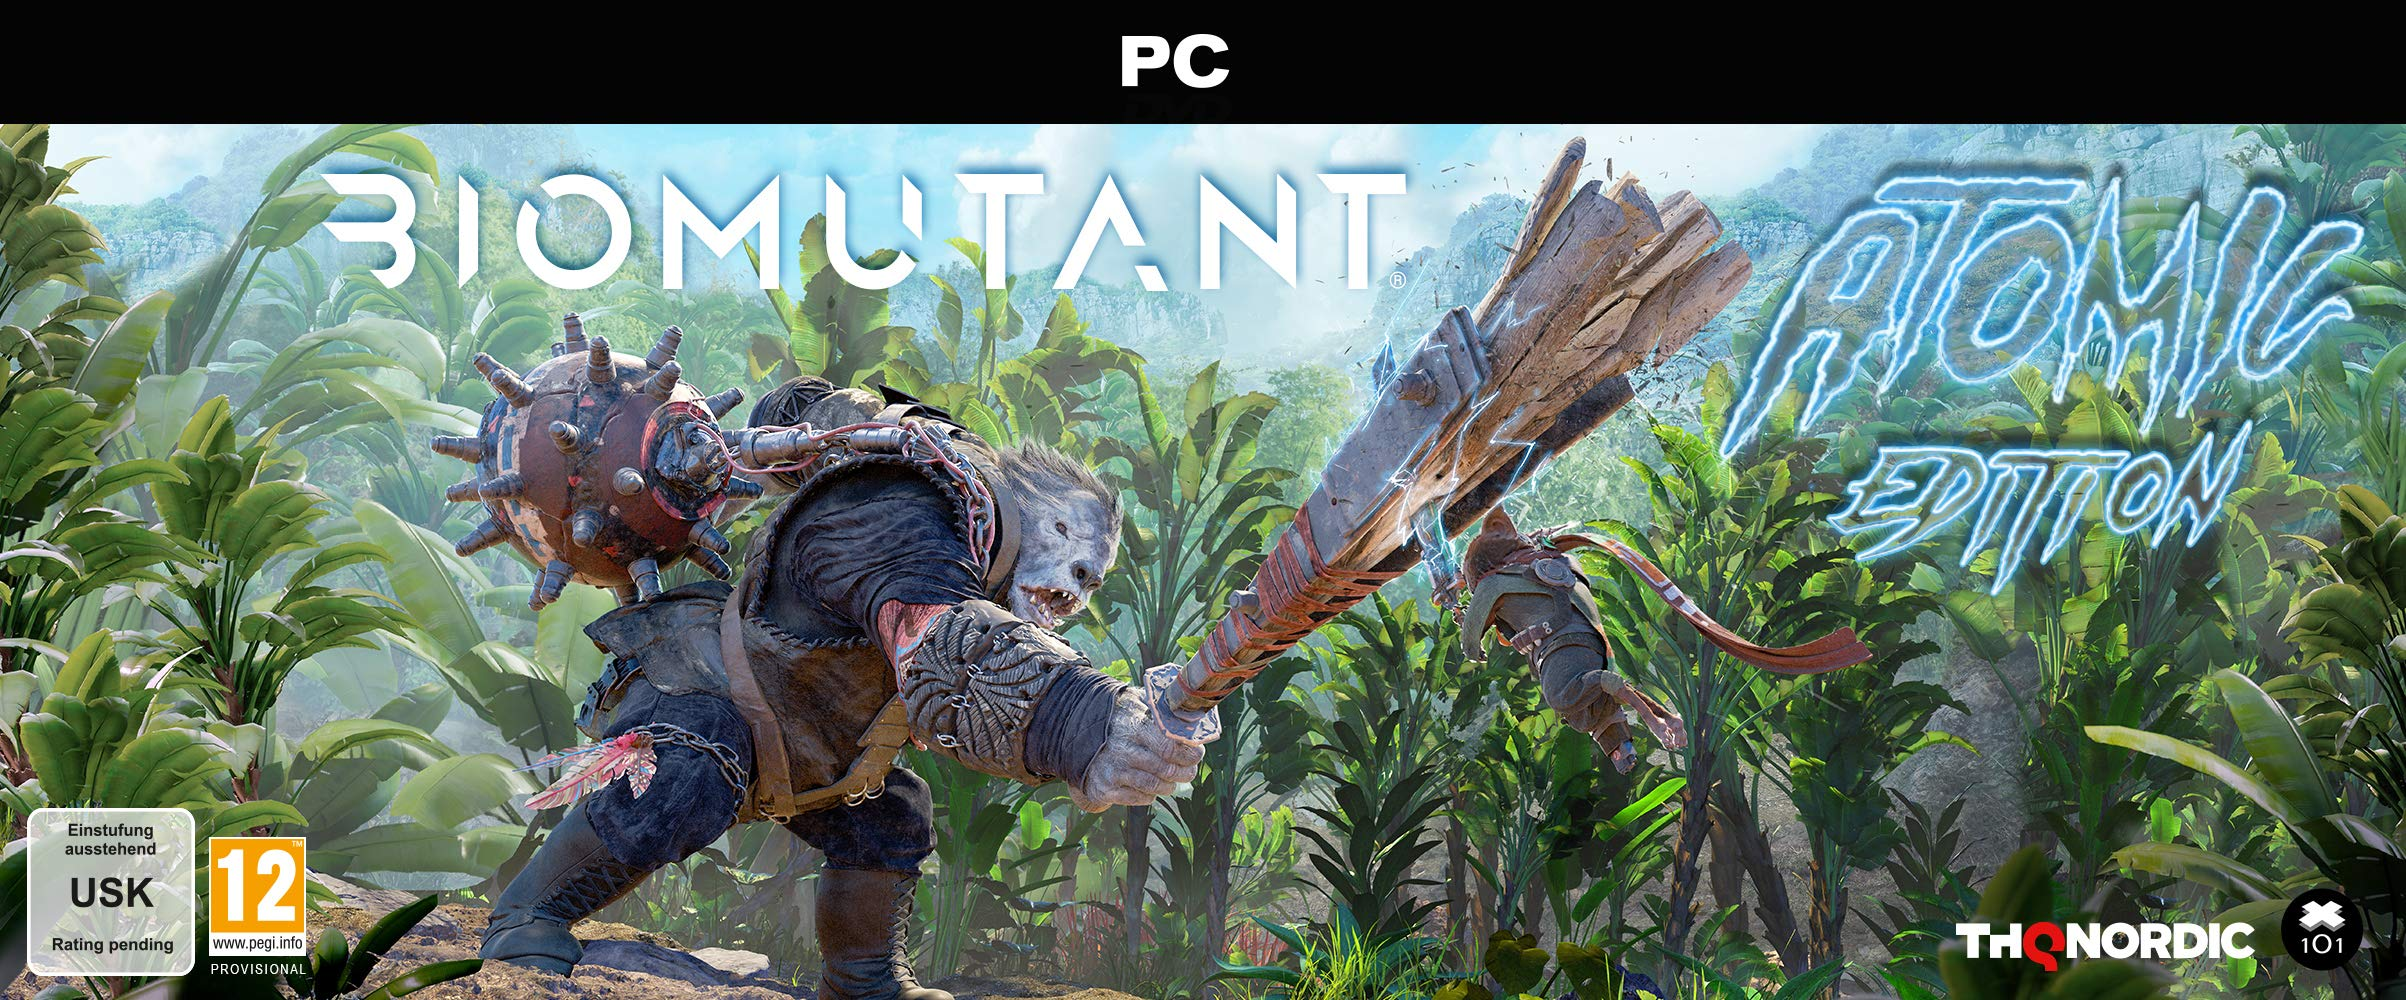 Biomutant Atomic Edition - PC by THQ Nordic